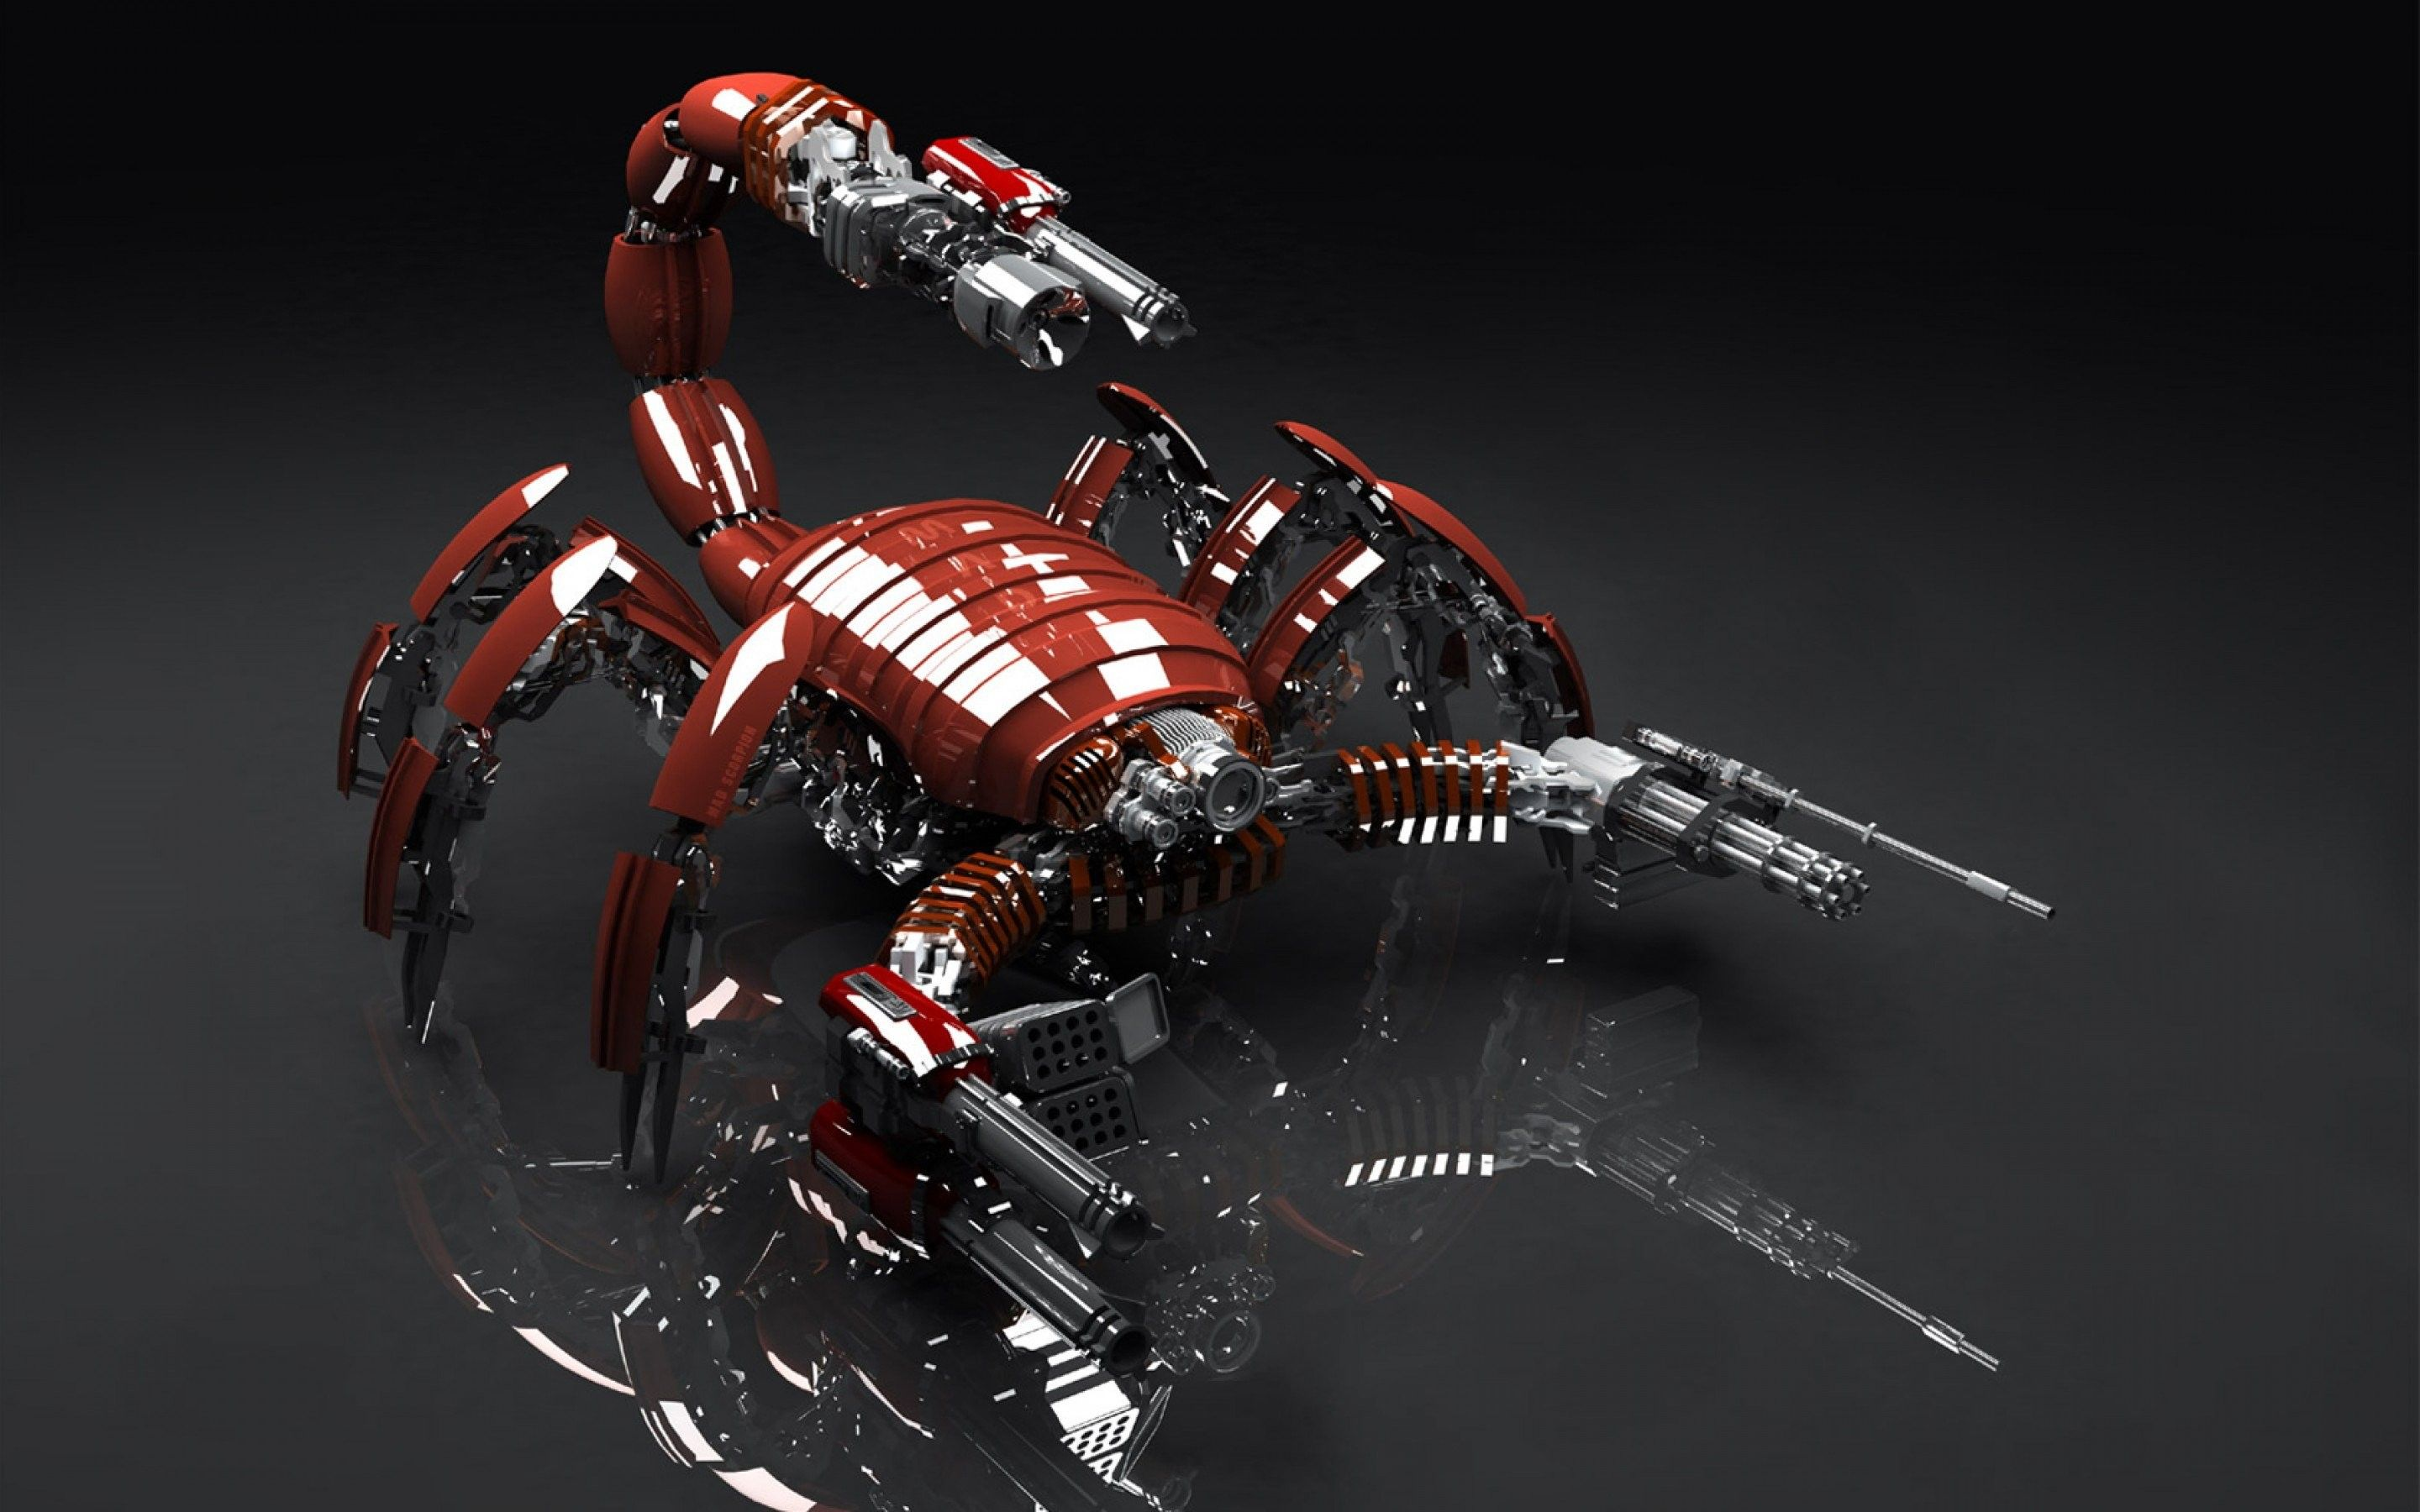 2880x1800 Mechanical Engineering Wallpapers Hd Robot Wallpaper Guns Wallpaper Wallpaper Pc